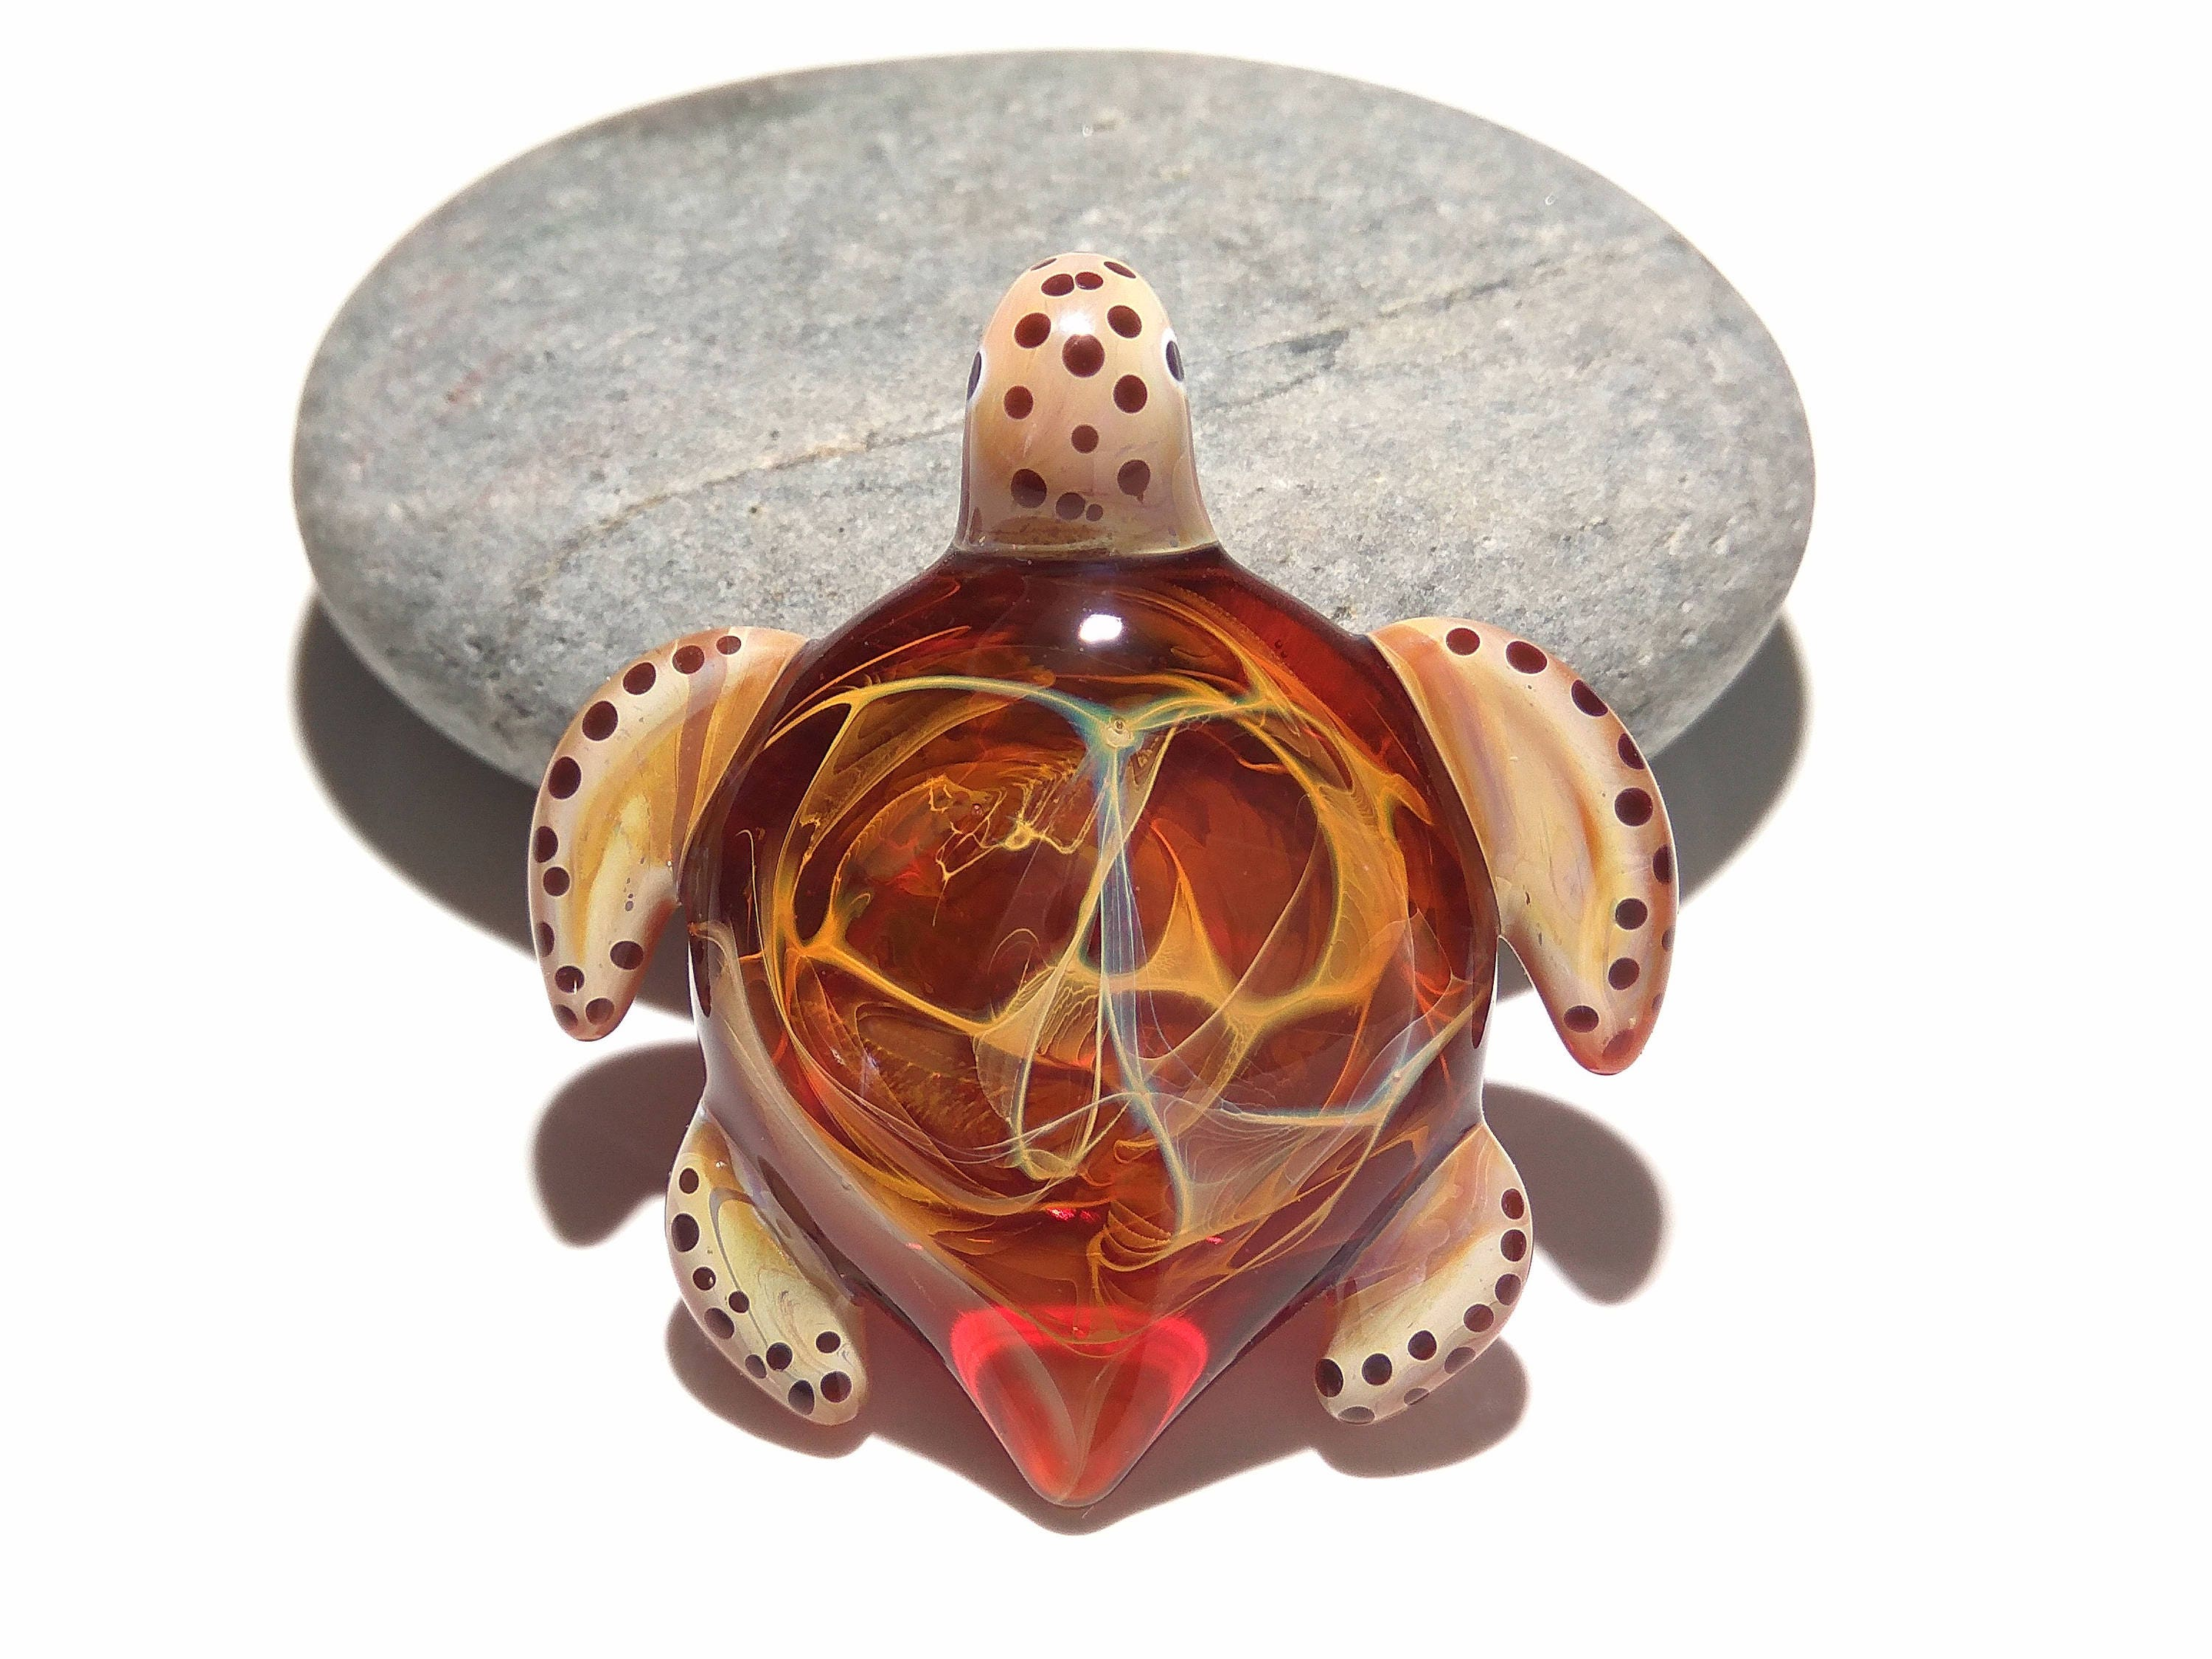 Glass pendant cosmic red turtle pendant glass jewelry hand glass pendant cosmic red turtle pendant glass jewelry hand blown glass turtle pendant handcrafted necklace borosilicate turtle mozeypictures Images